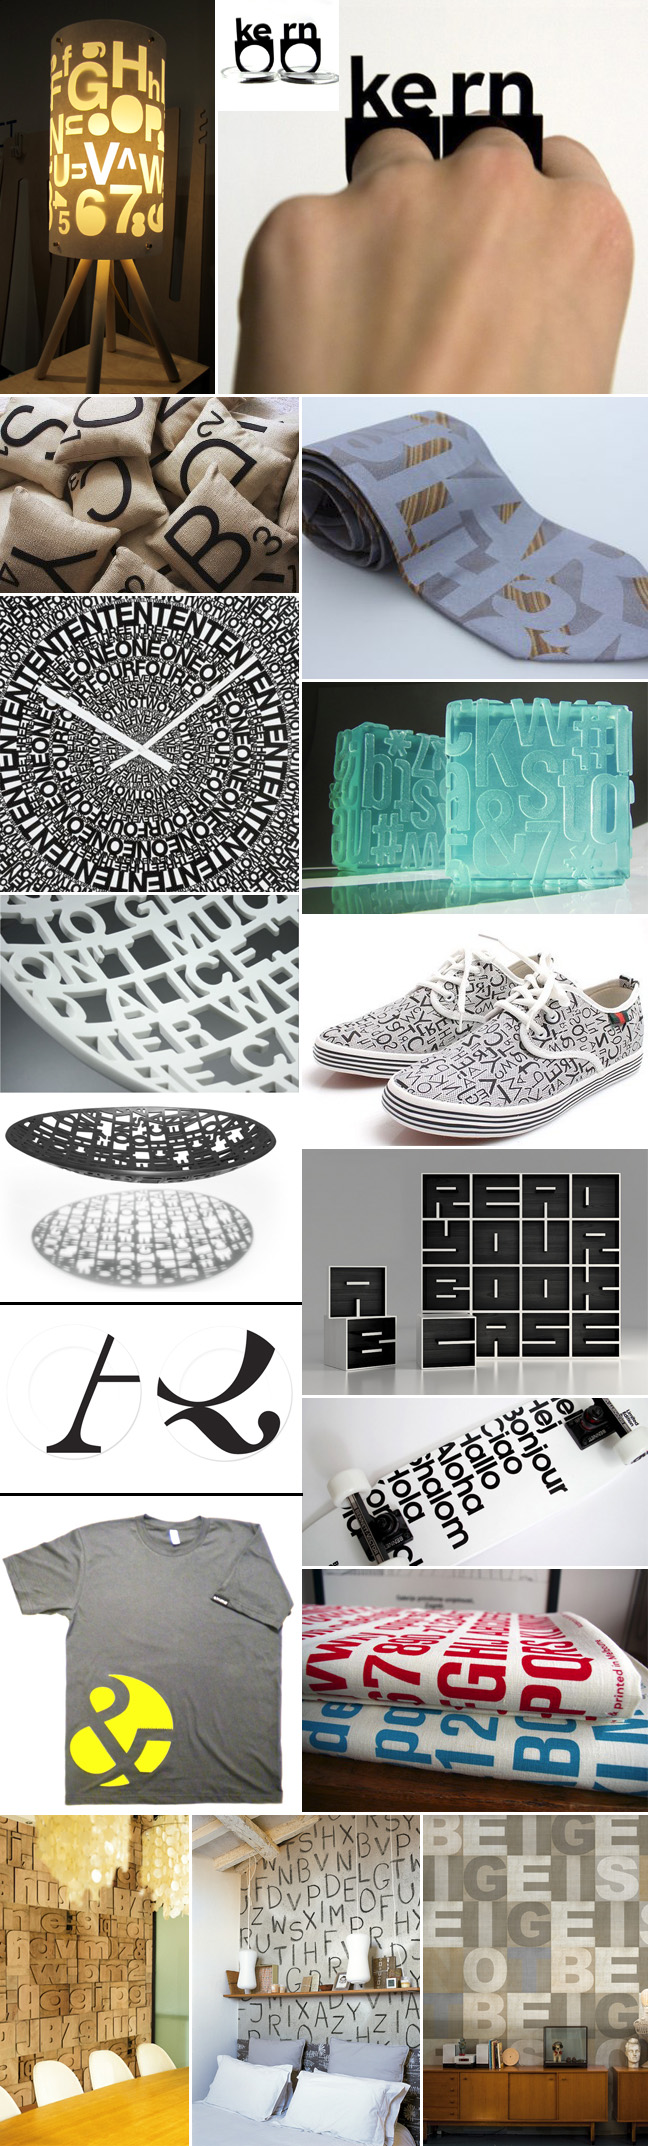 Type, Letters on objects, Typography